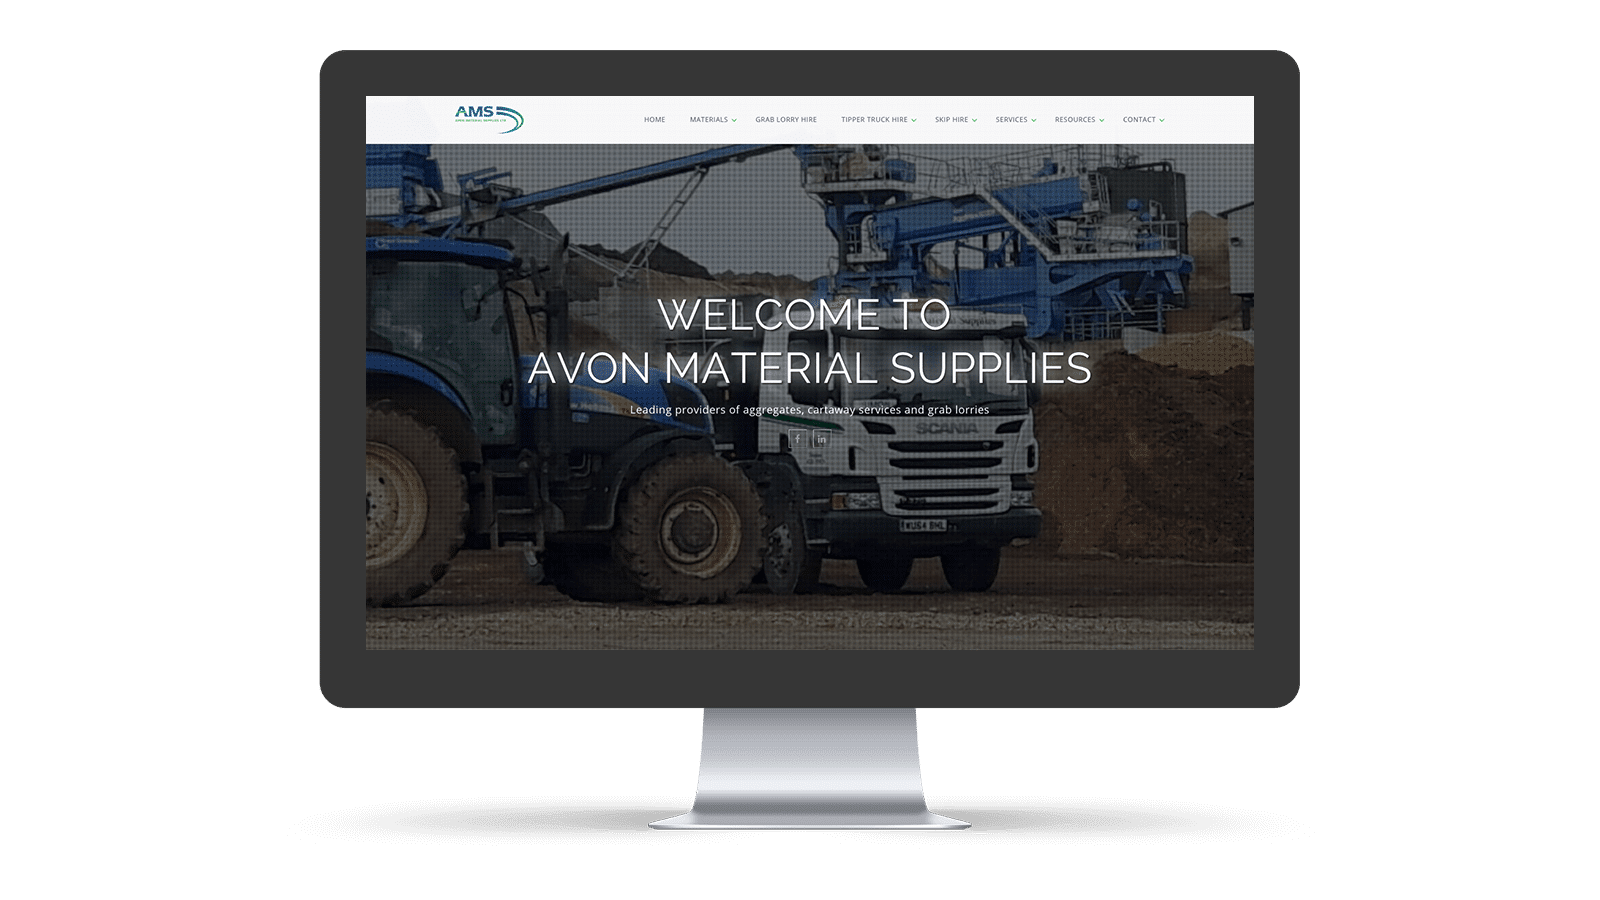 Avon Material Supplies homepage design